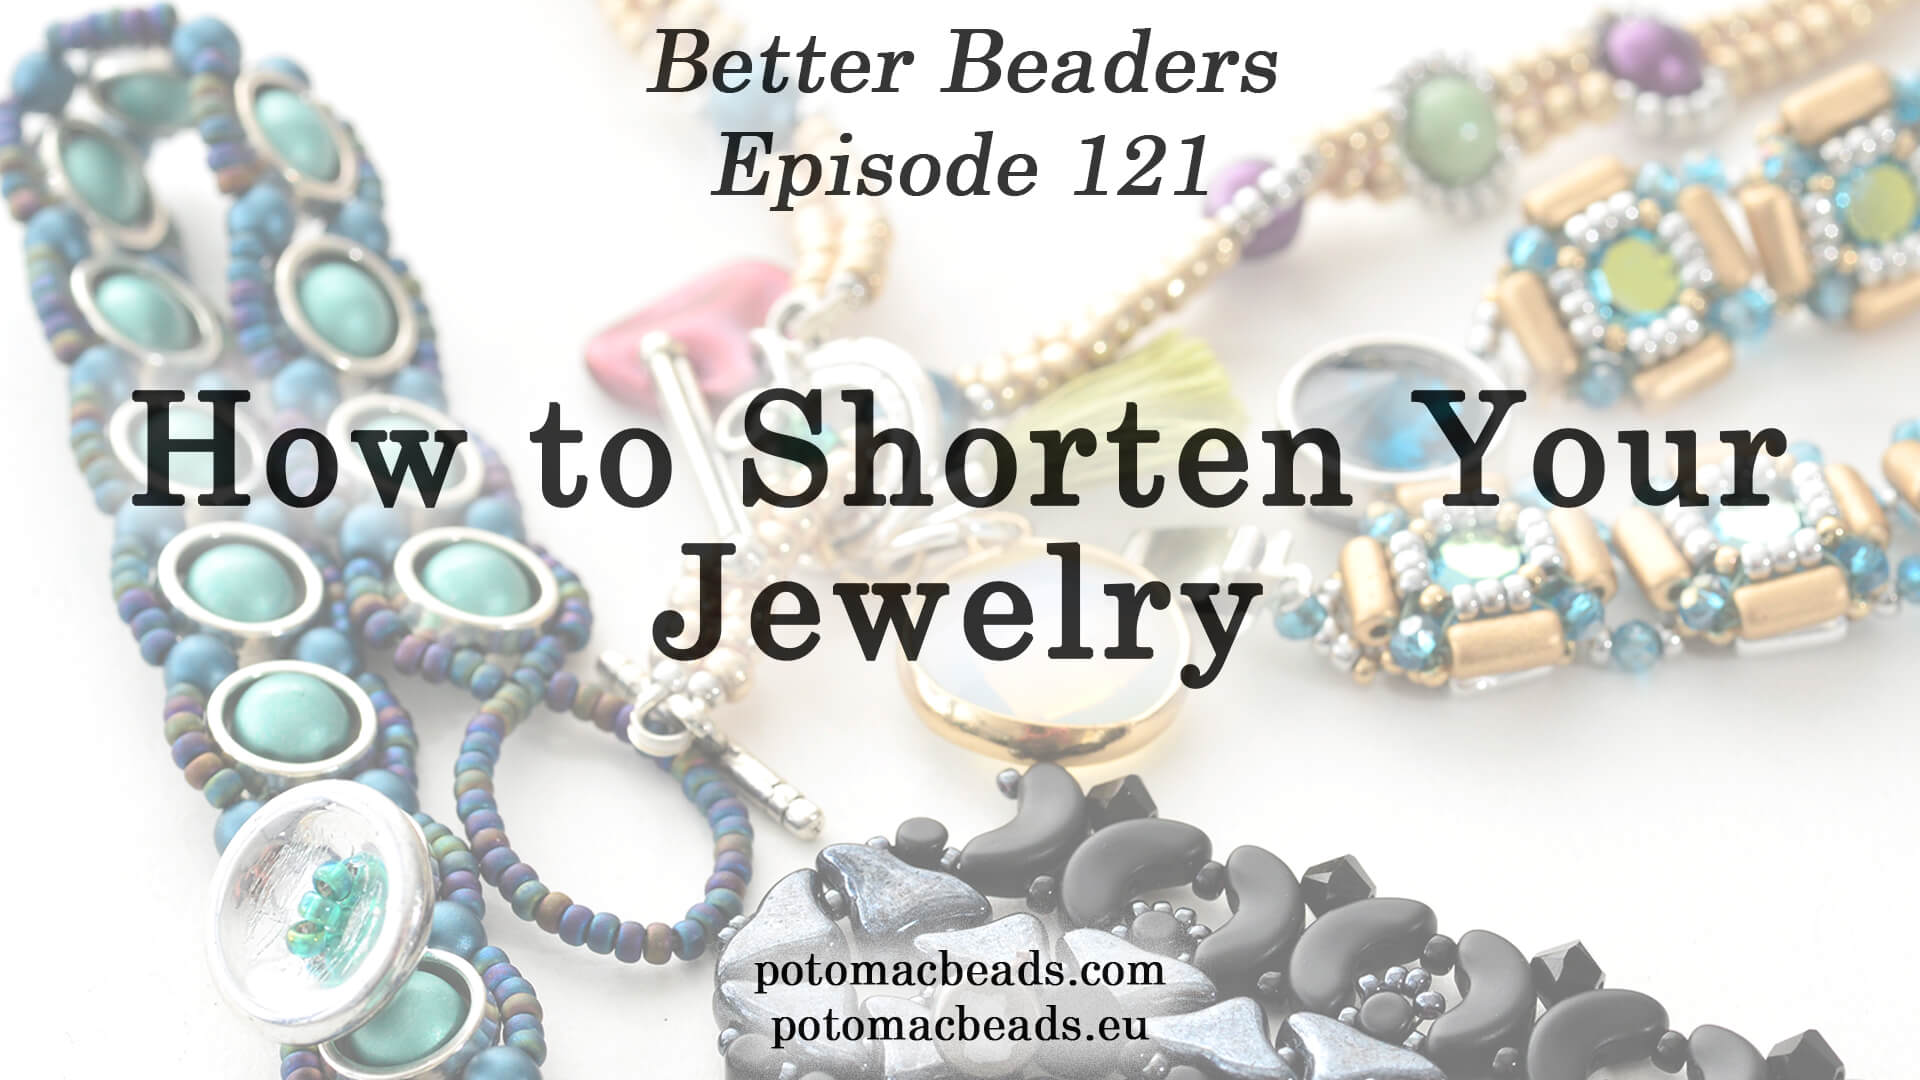 How to Bead Jewelry / Better Beader Episodes / Better Beader Episode 121 - How to Shorten Your Jewelry